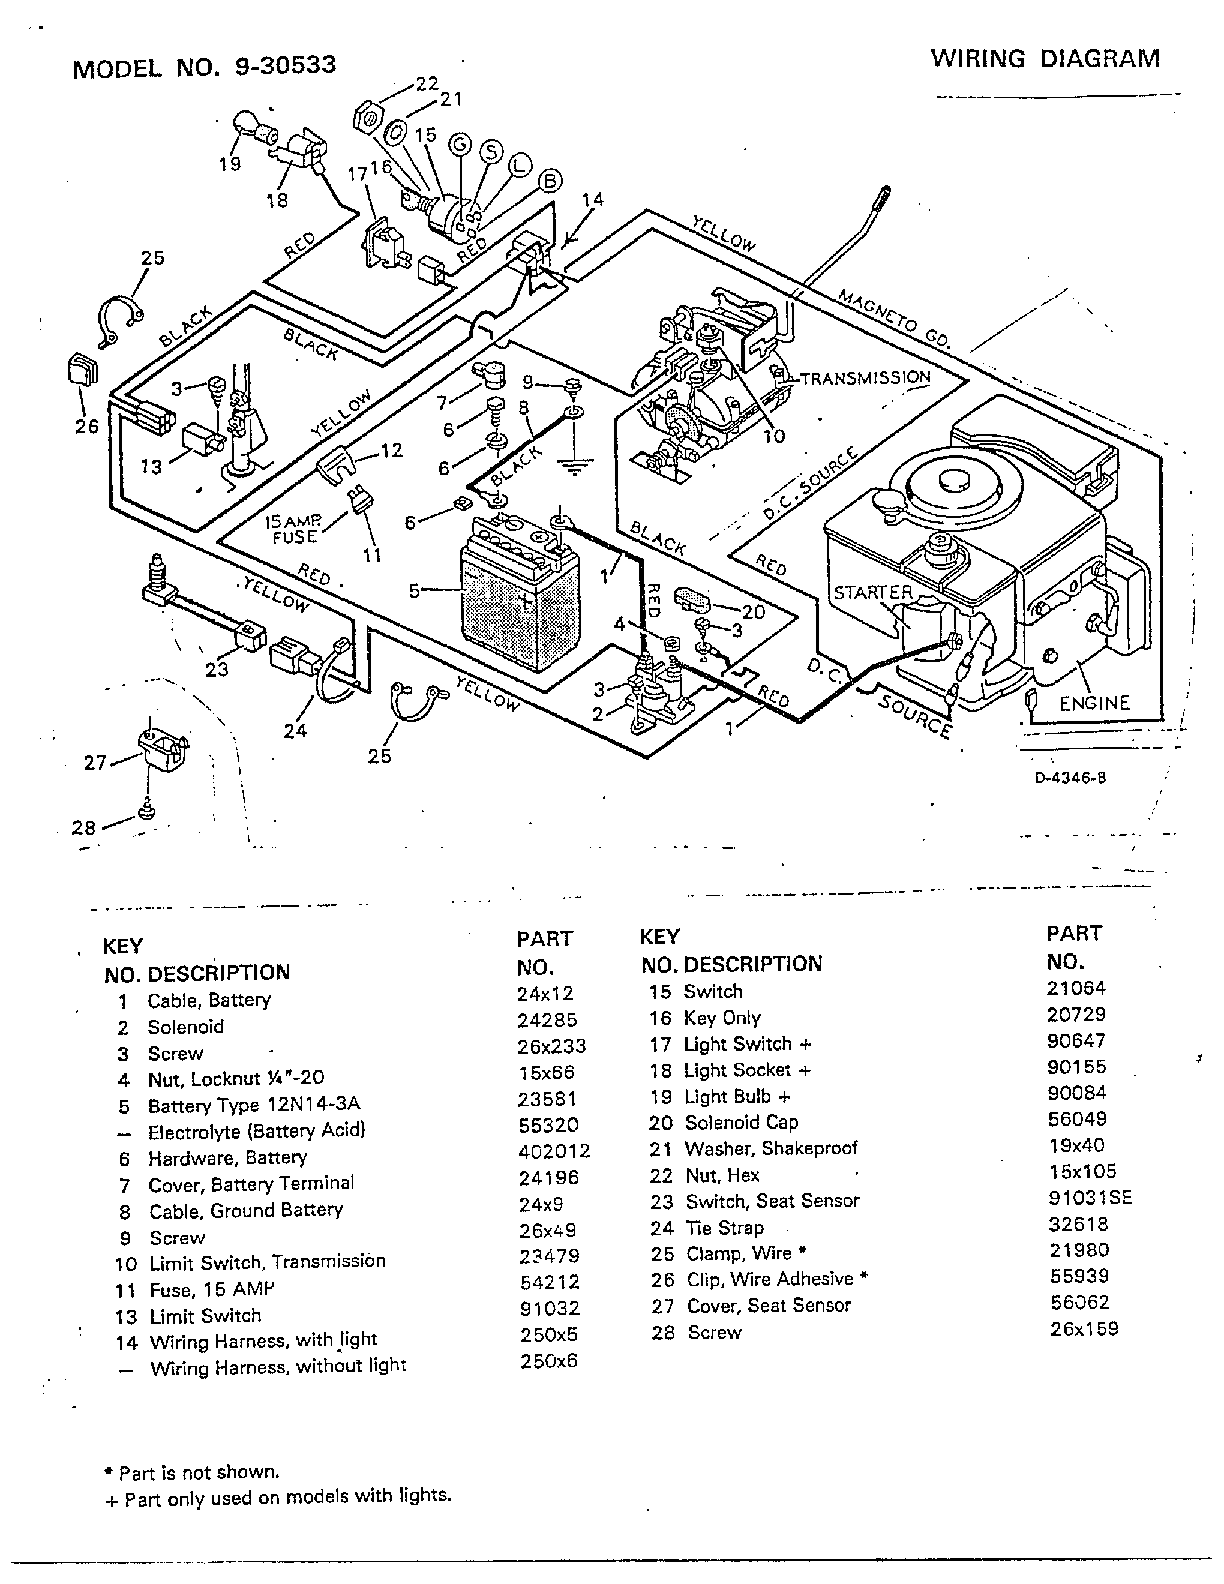 Murray Tractor Wiring Diagram Murray Lawn Mower Solenoid Wiring